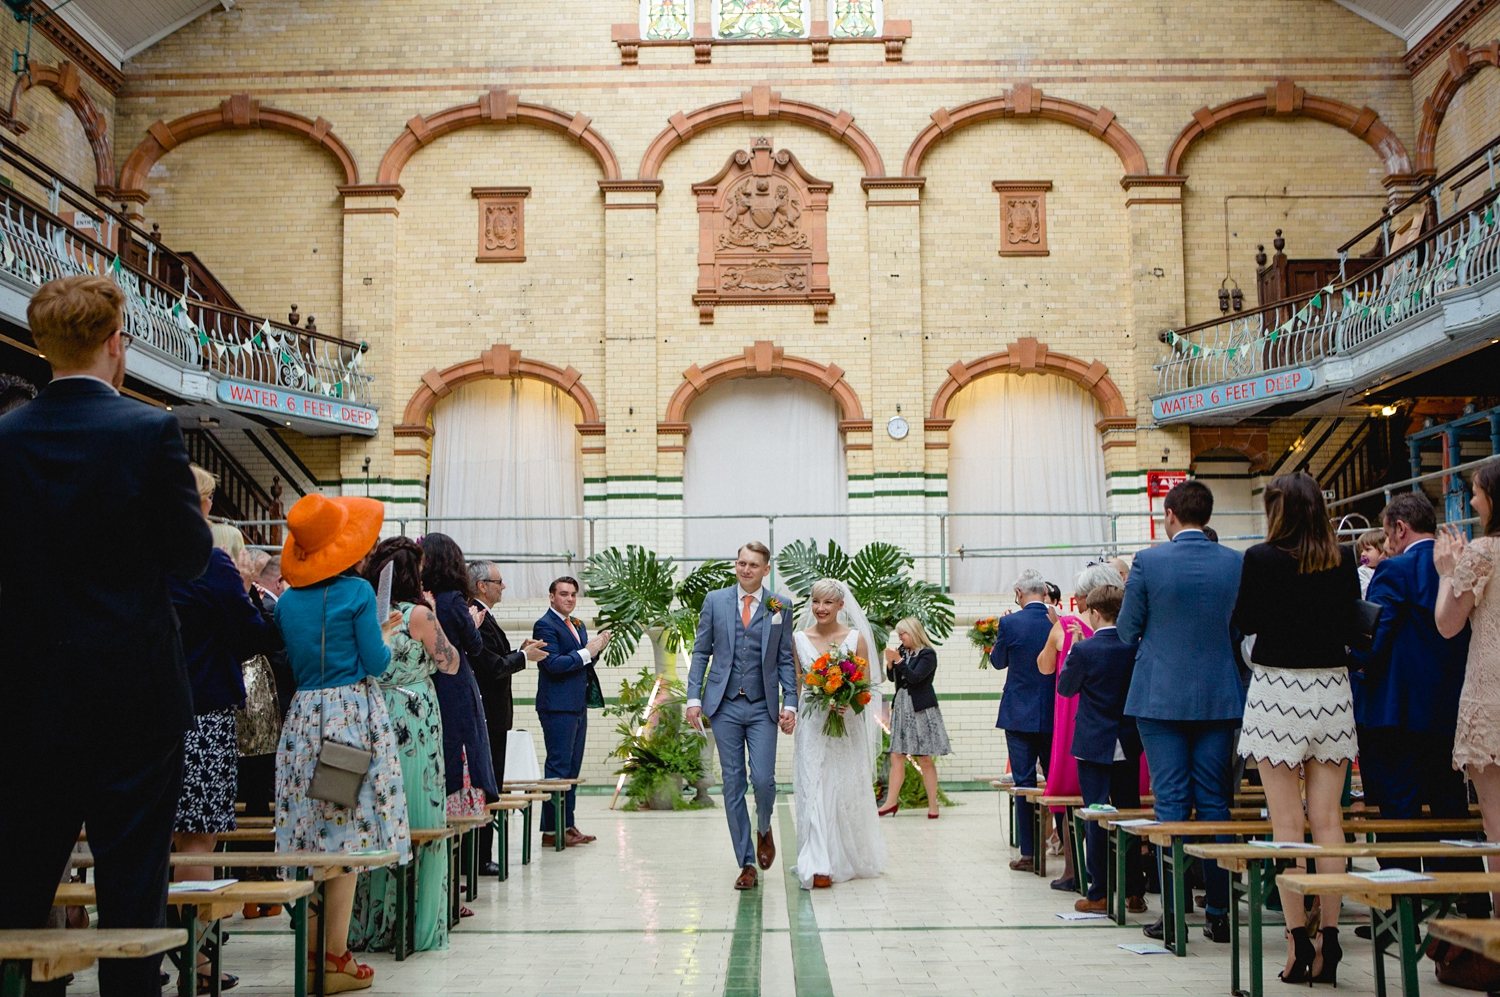 Lauren & Sam at Victoria Baths | Swimming Baths Wedding Venue Manchester